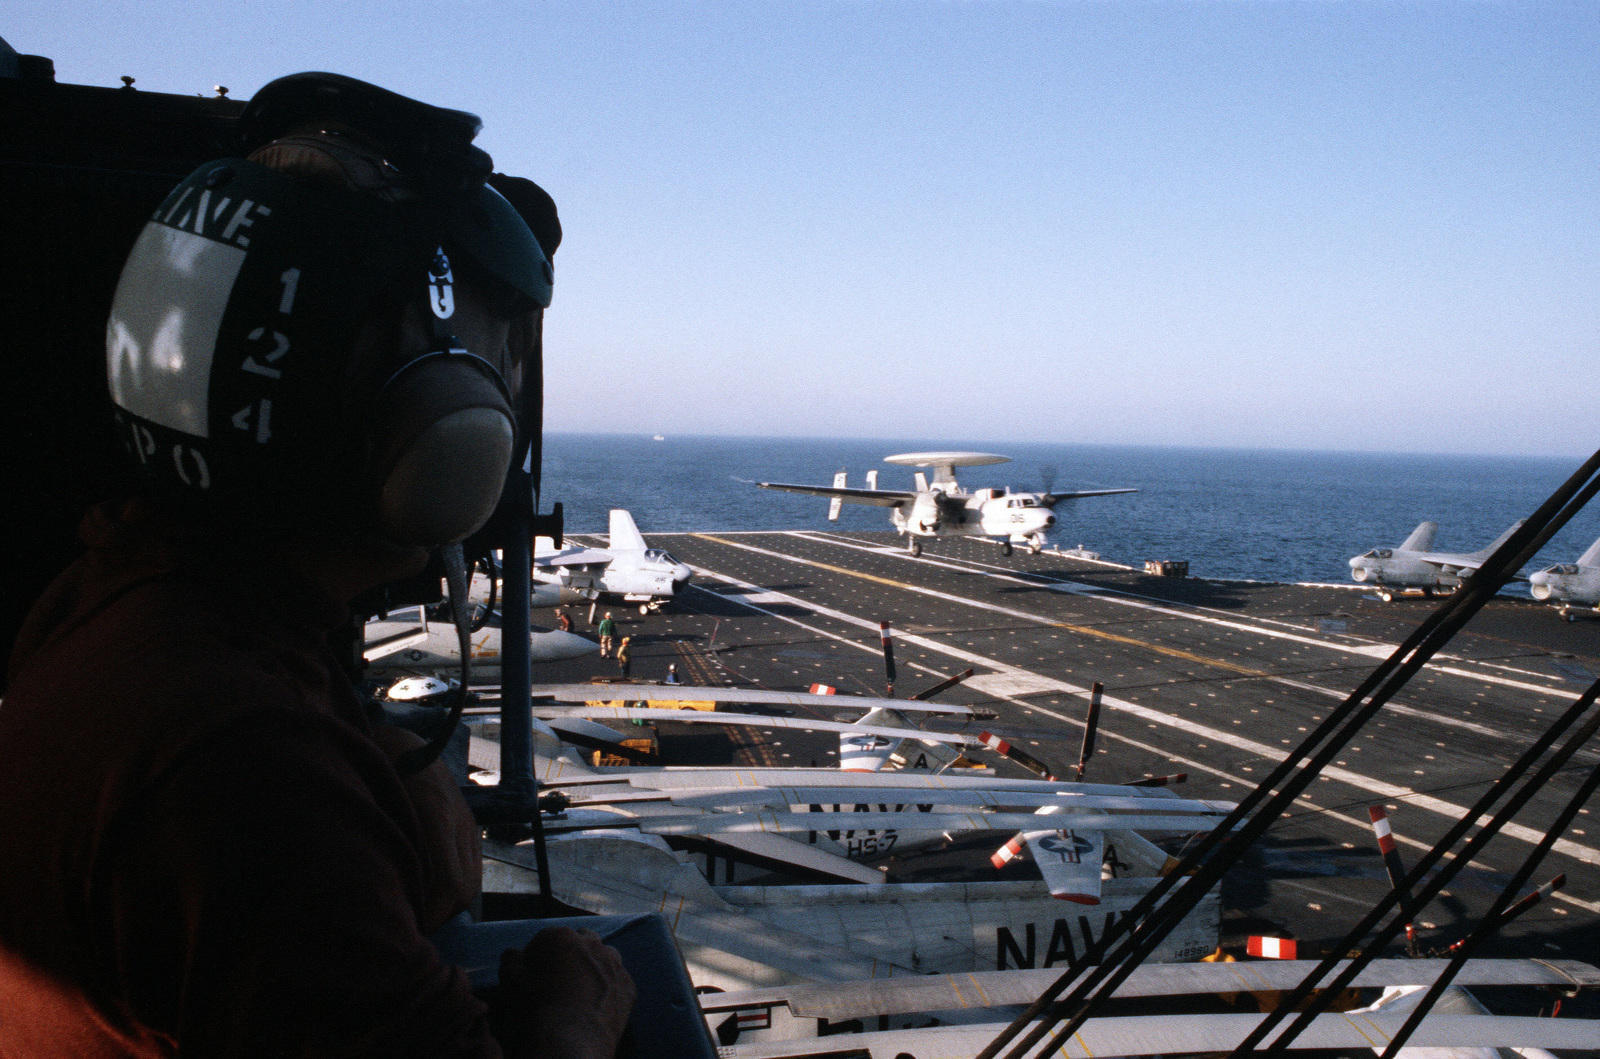 An E-2C Hawkeye airborne early warning aircraft comes in for a landing aboard the aircraft carrier USS JOHN F. KENNEDY (CV 67). A-7 Corsair II aircraft are parked on either side of the flight deck. An F-14A Tomcat aircraft and three SH-3 Sea King helicopters from Helicopter Anti-submarine Squadron (HS-7) are parked on the left